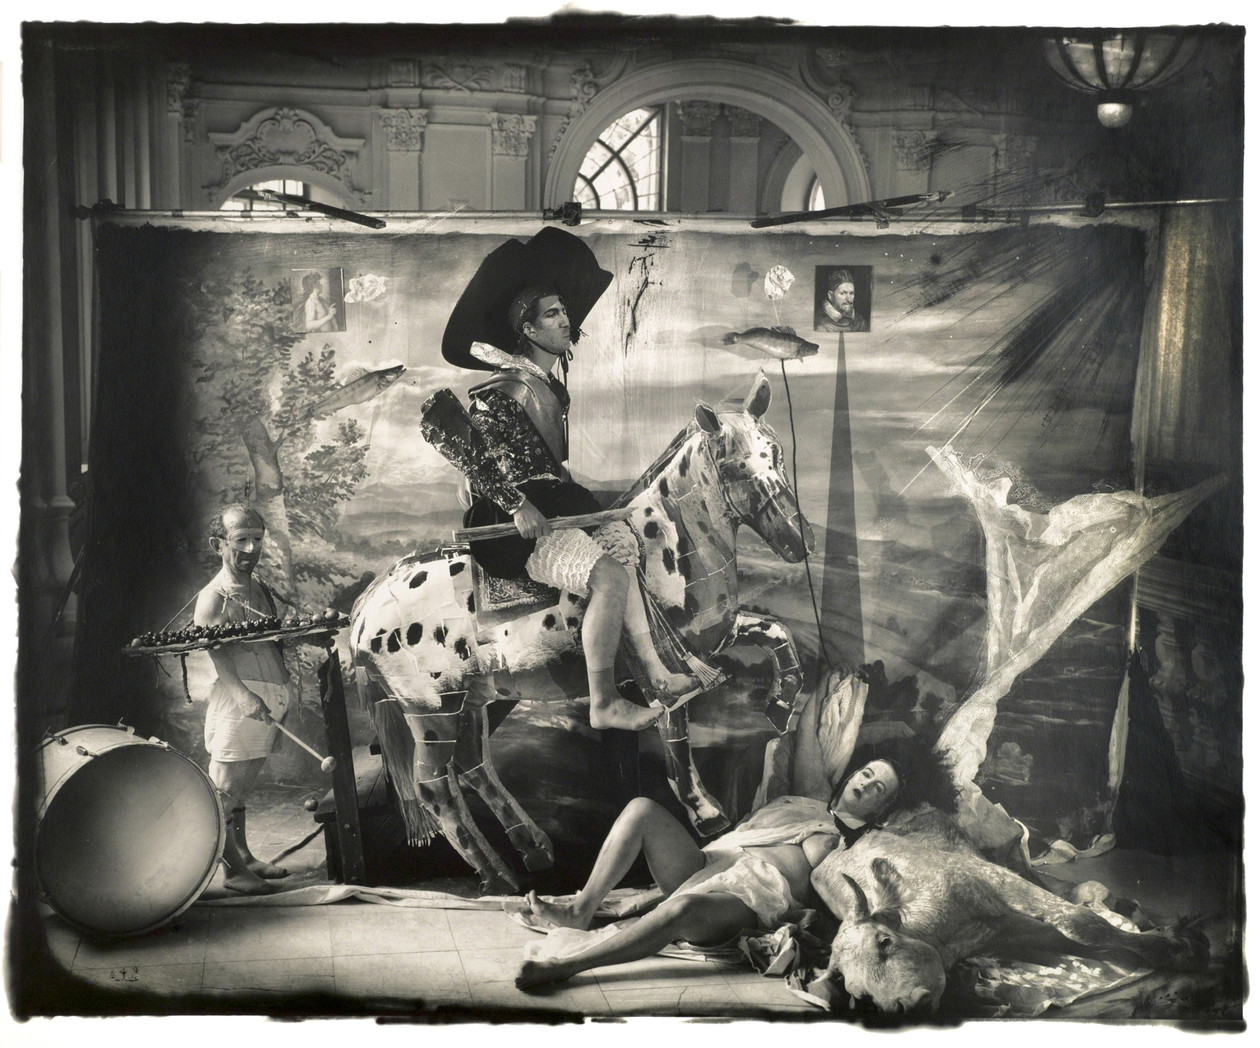 The Fool, Budapest (1993) by Joel-Peter Witkin